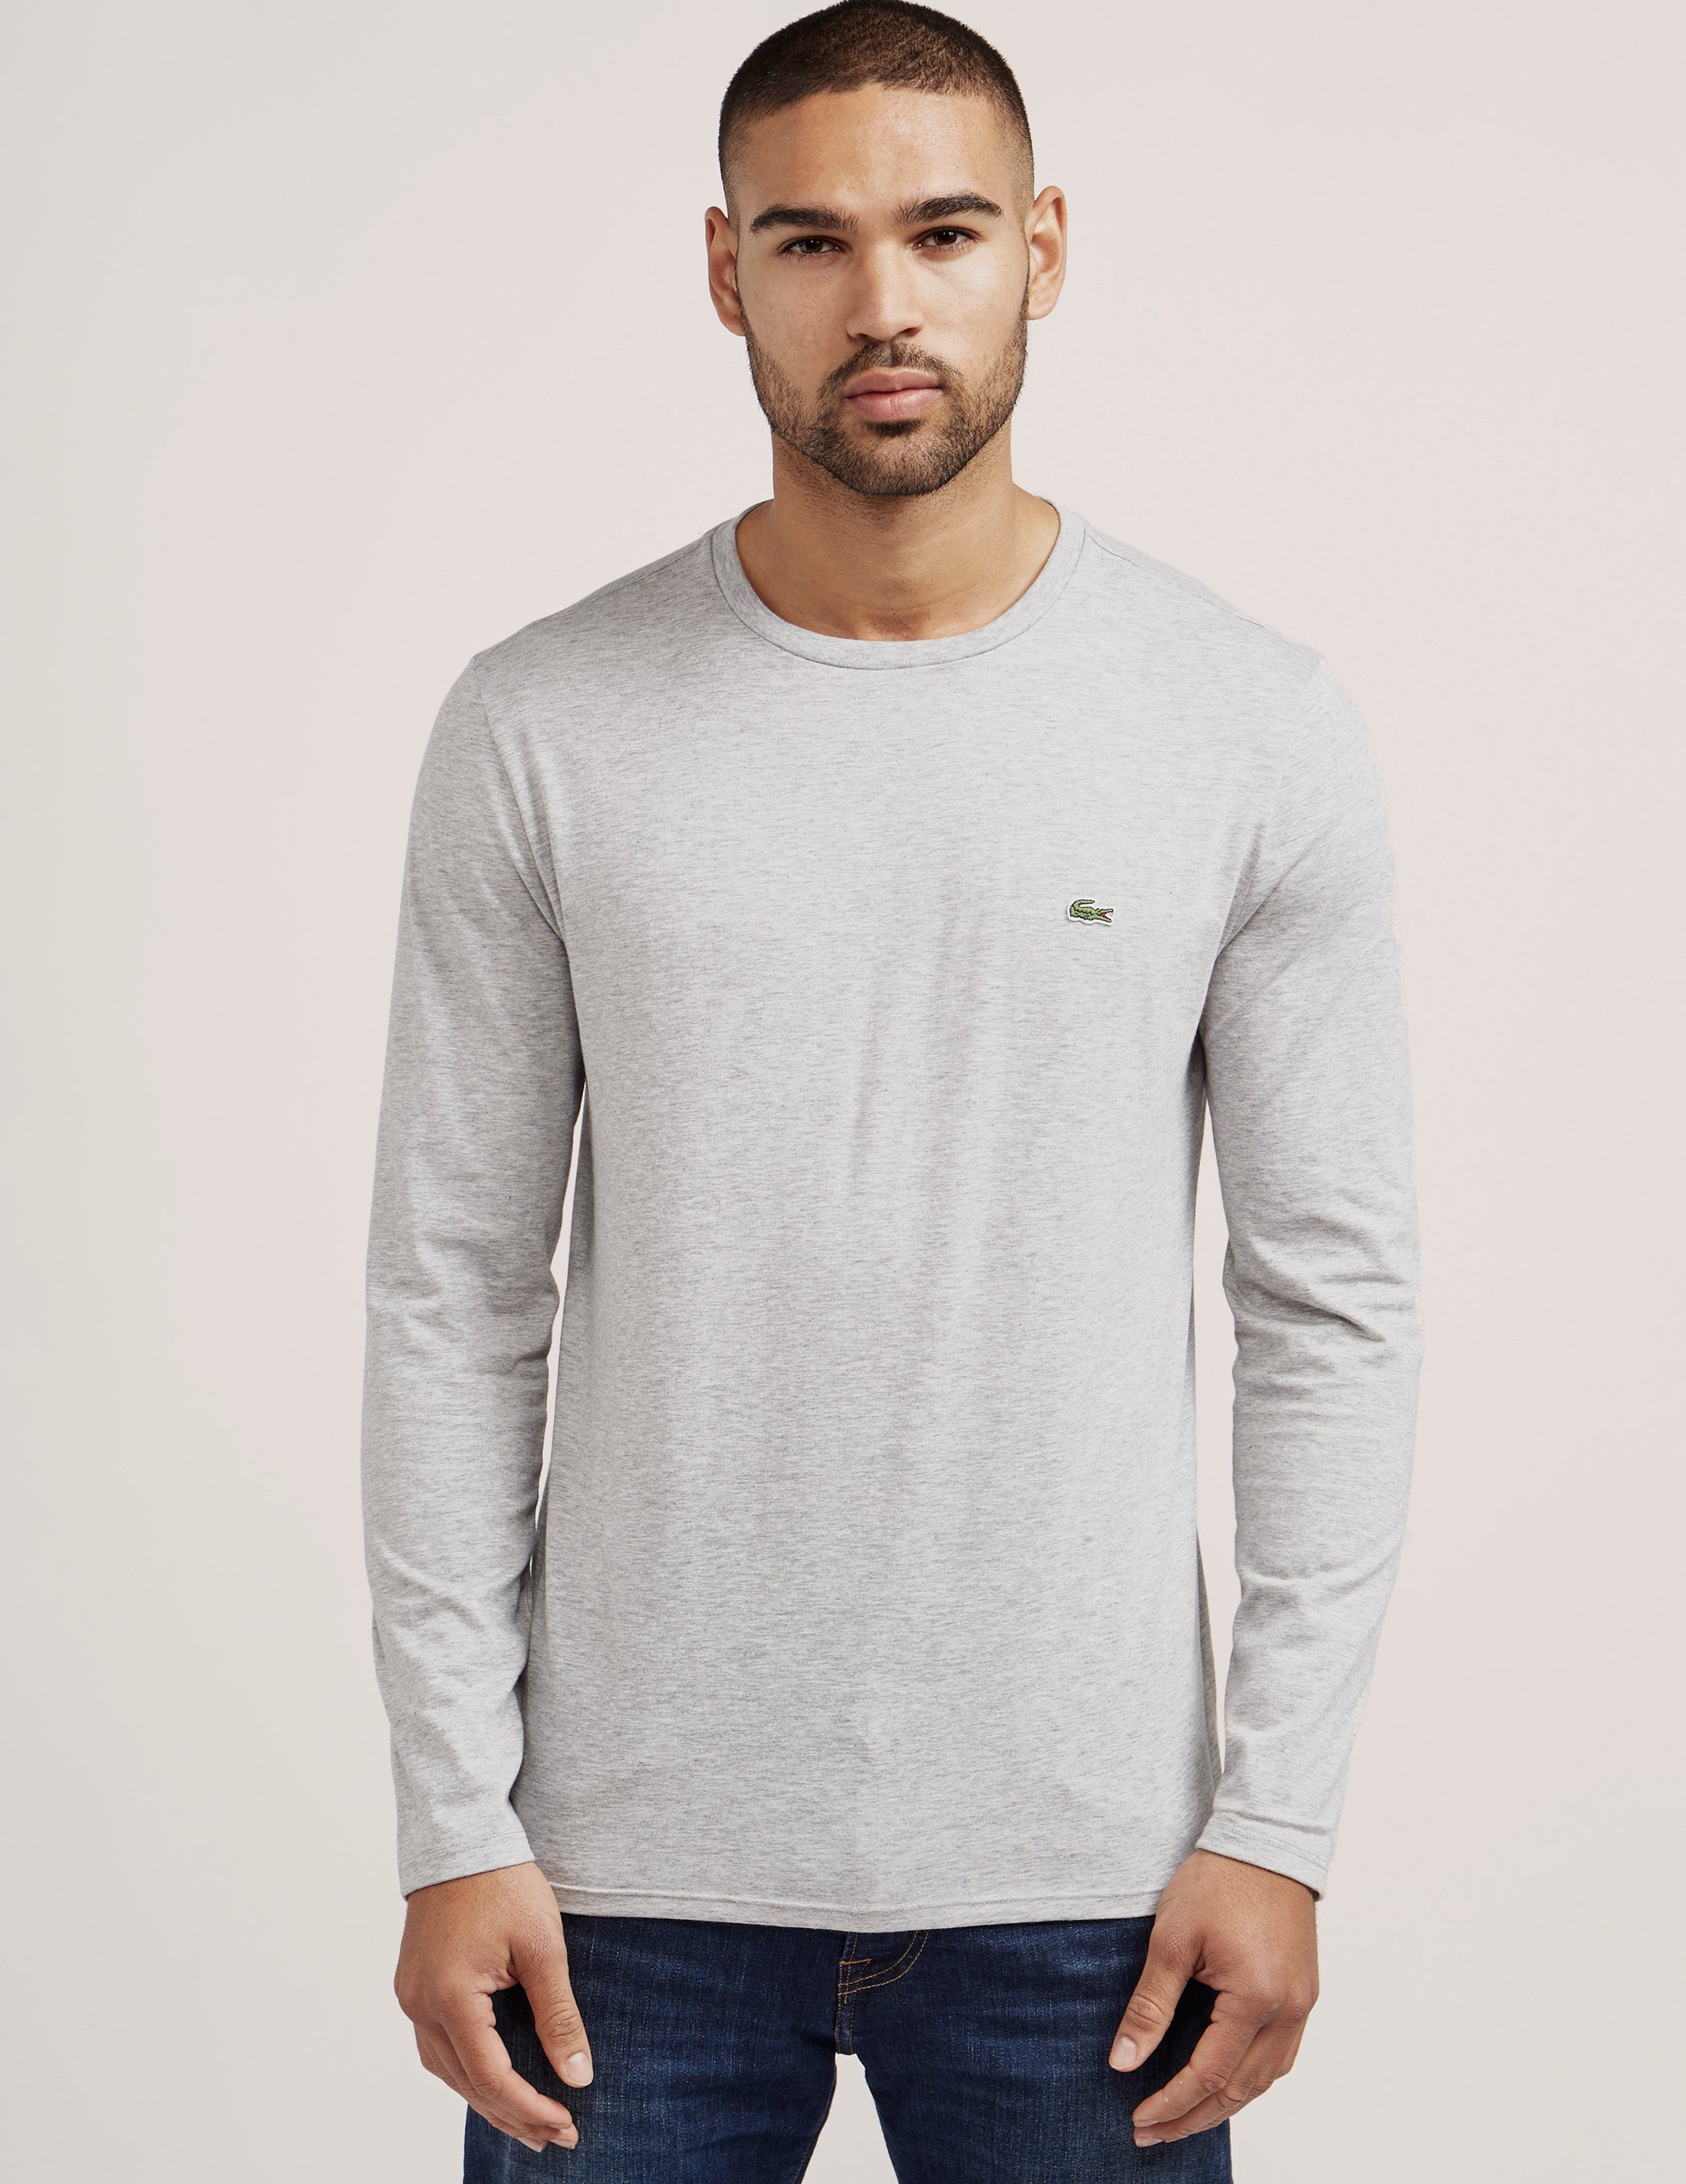 Lacoste Classic Long Sleeve T-Shirt